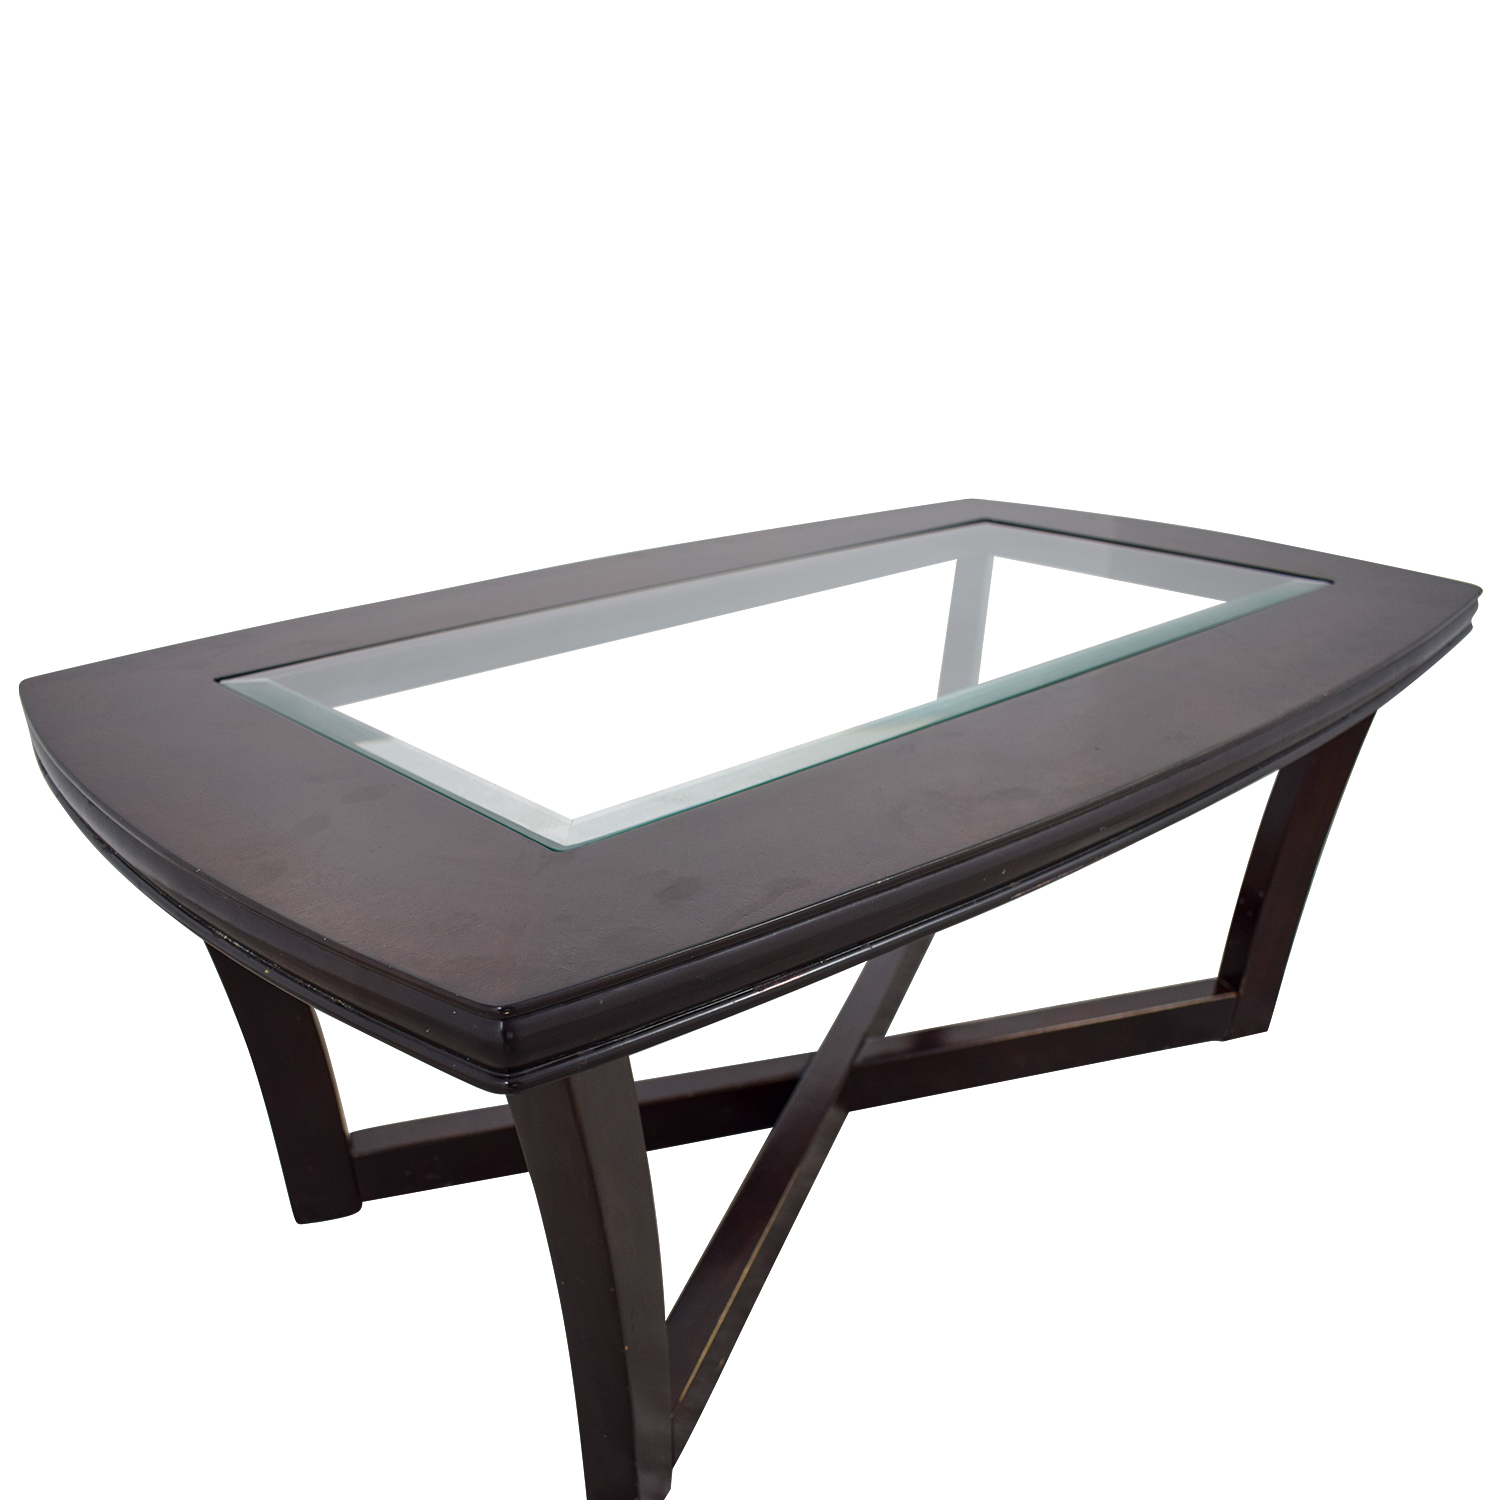 Ashley Glass Coffee Table.84 Off Ashley Furniture Ashley Furniture Tempered Glass And Cherry Stain Coffee Table Tables